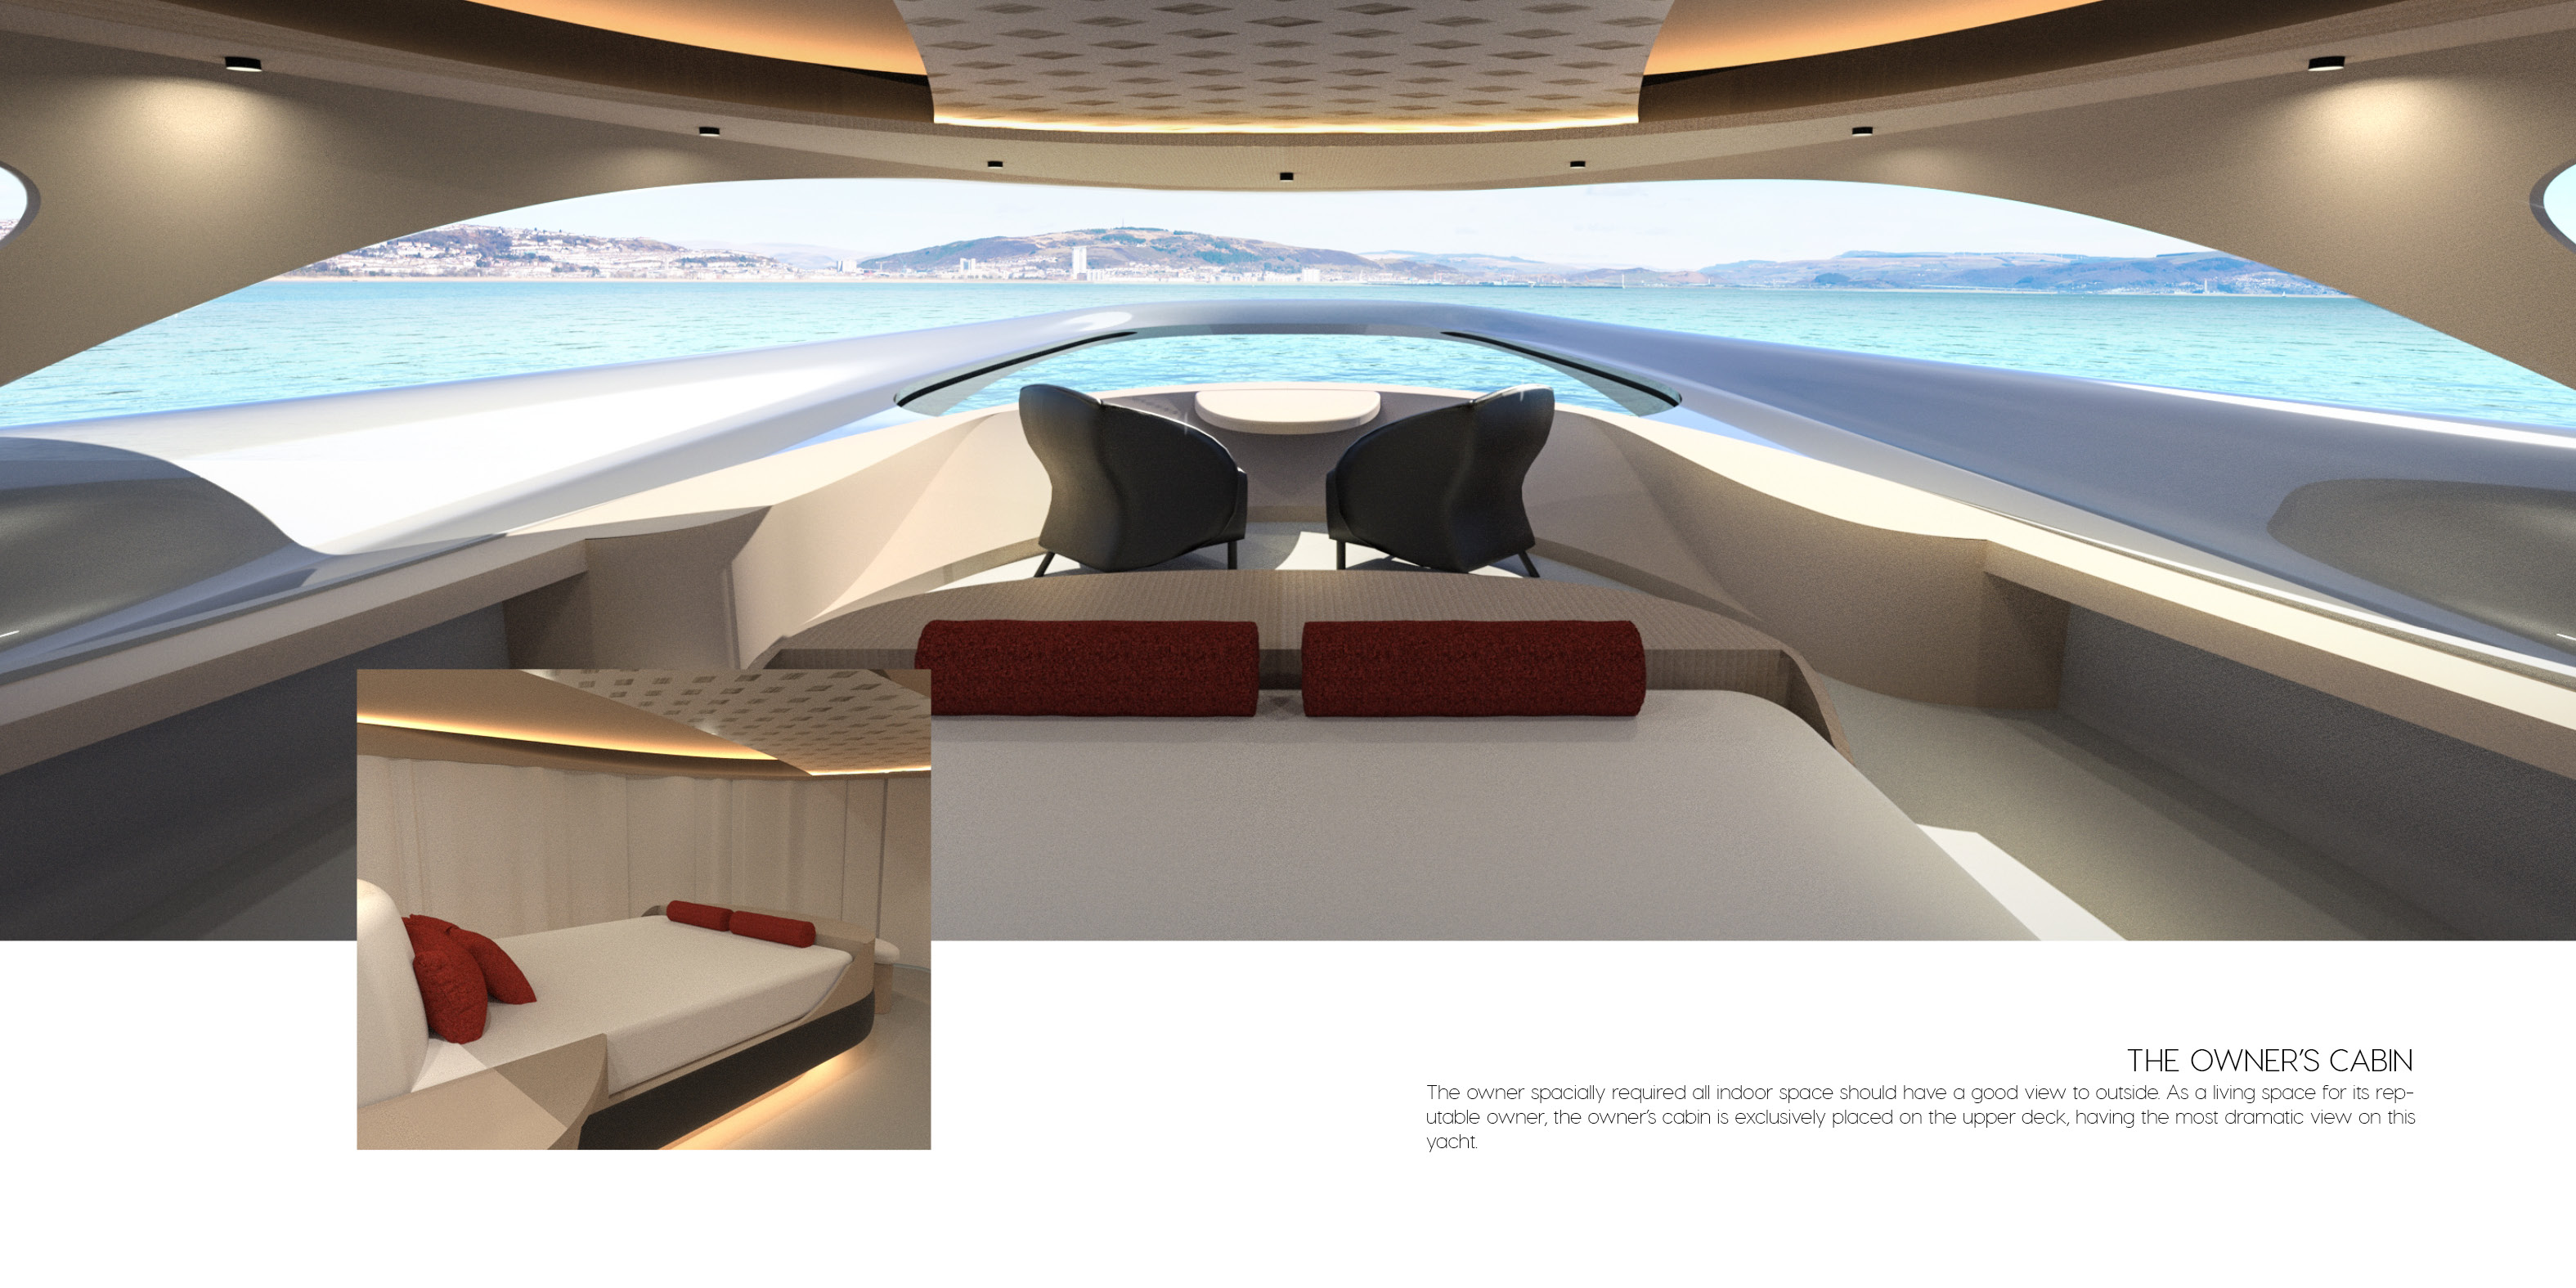 Owner Cabin - Saloon and Dining - Interior Accommodation - Luxury Superyacht concept CERCIO designed by Baoqi Xiao